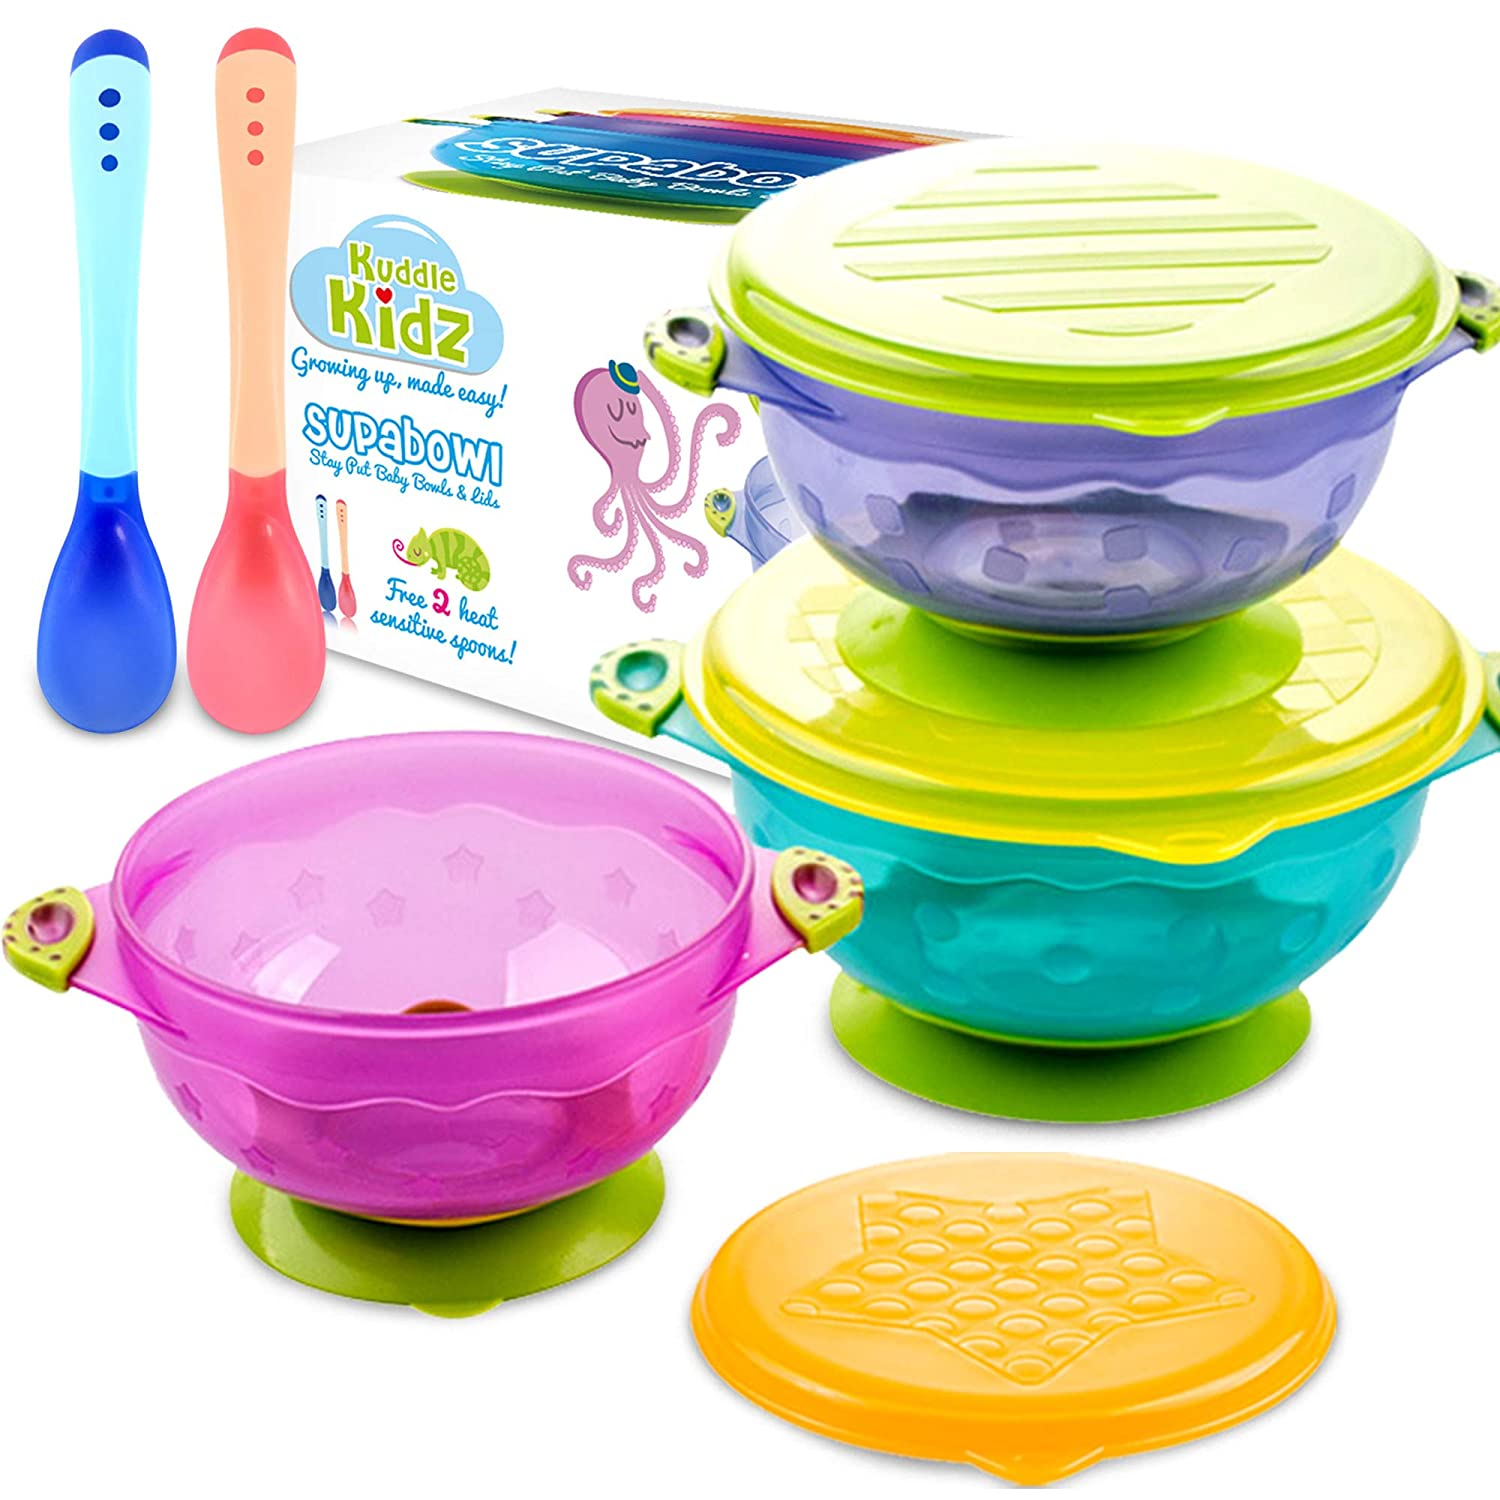 SUPABOWL Baby Suction Bowls Popular Stage First Topics on TV for Toddlers